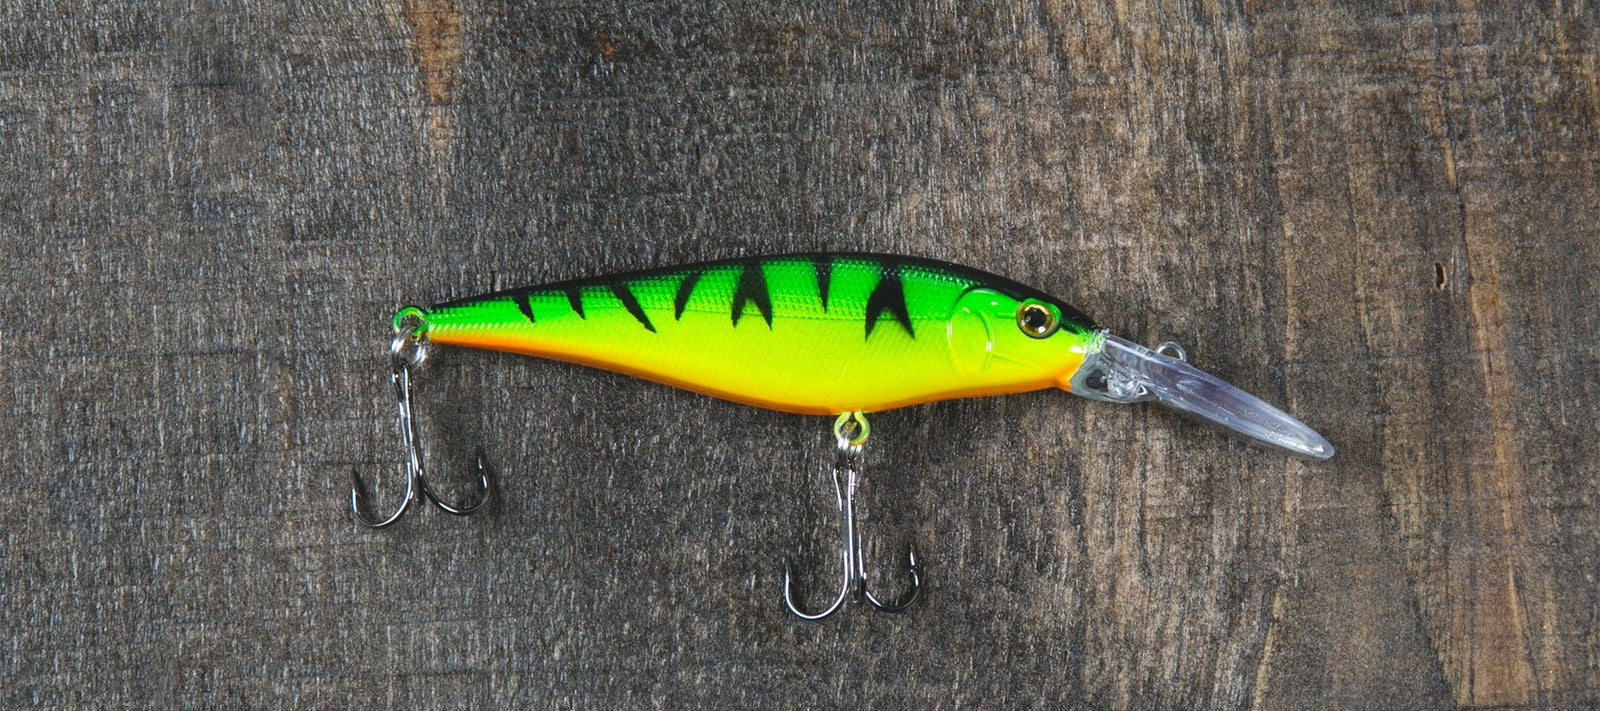 Silver Horde Gold Star Rigged Pink Squid Fishing Lure Trout Salmon Steelhead for sale online